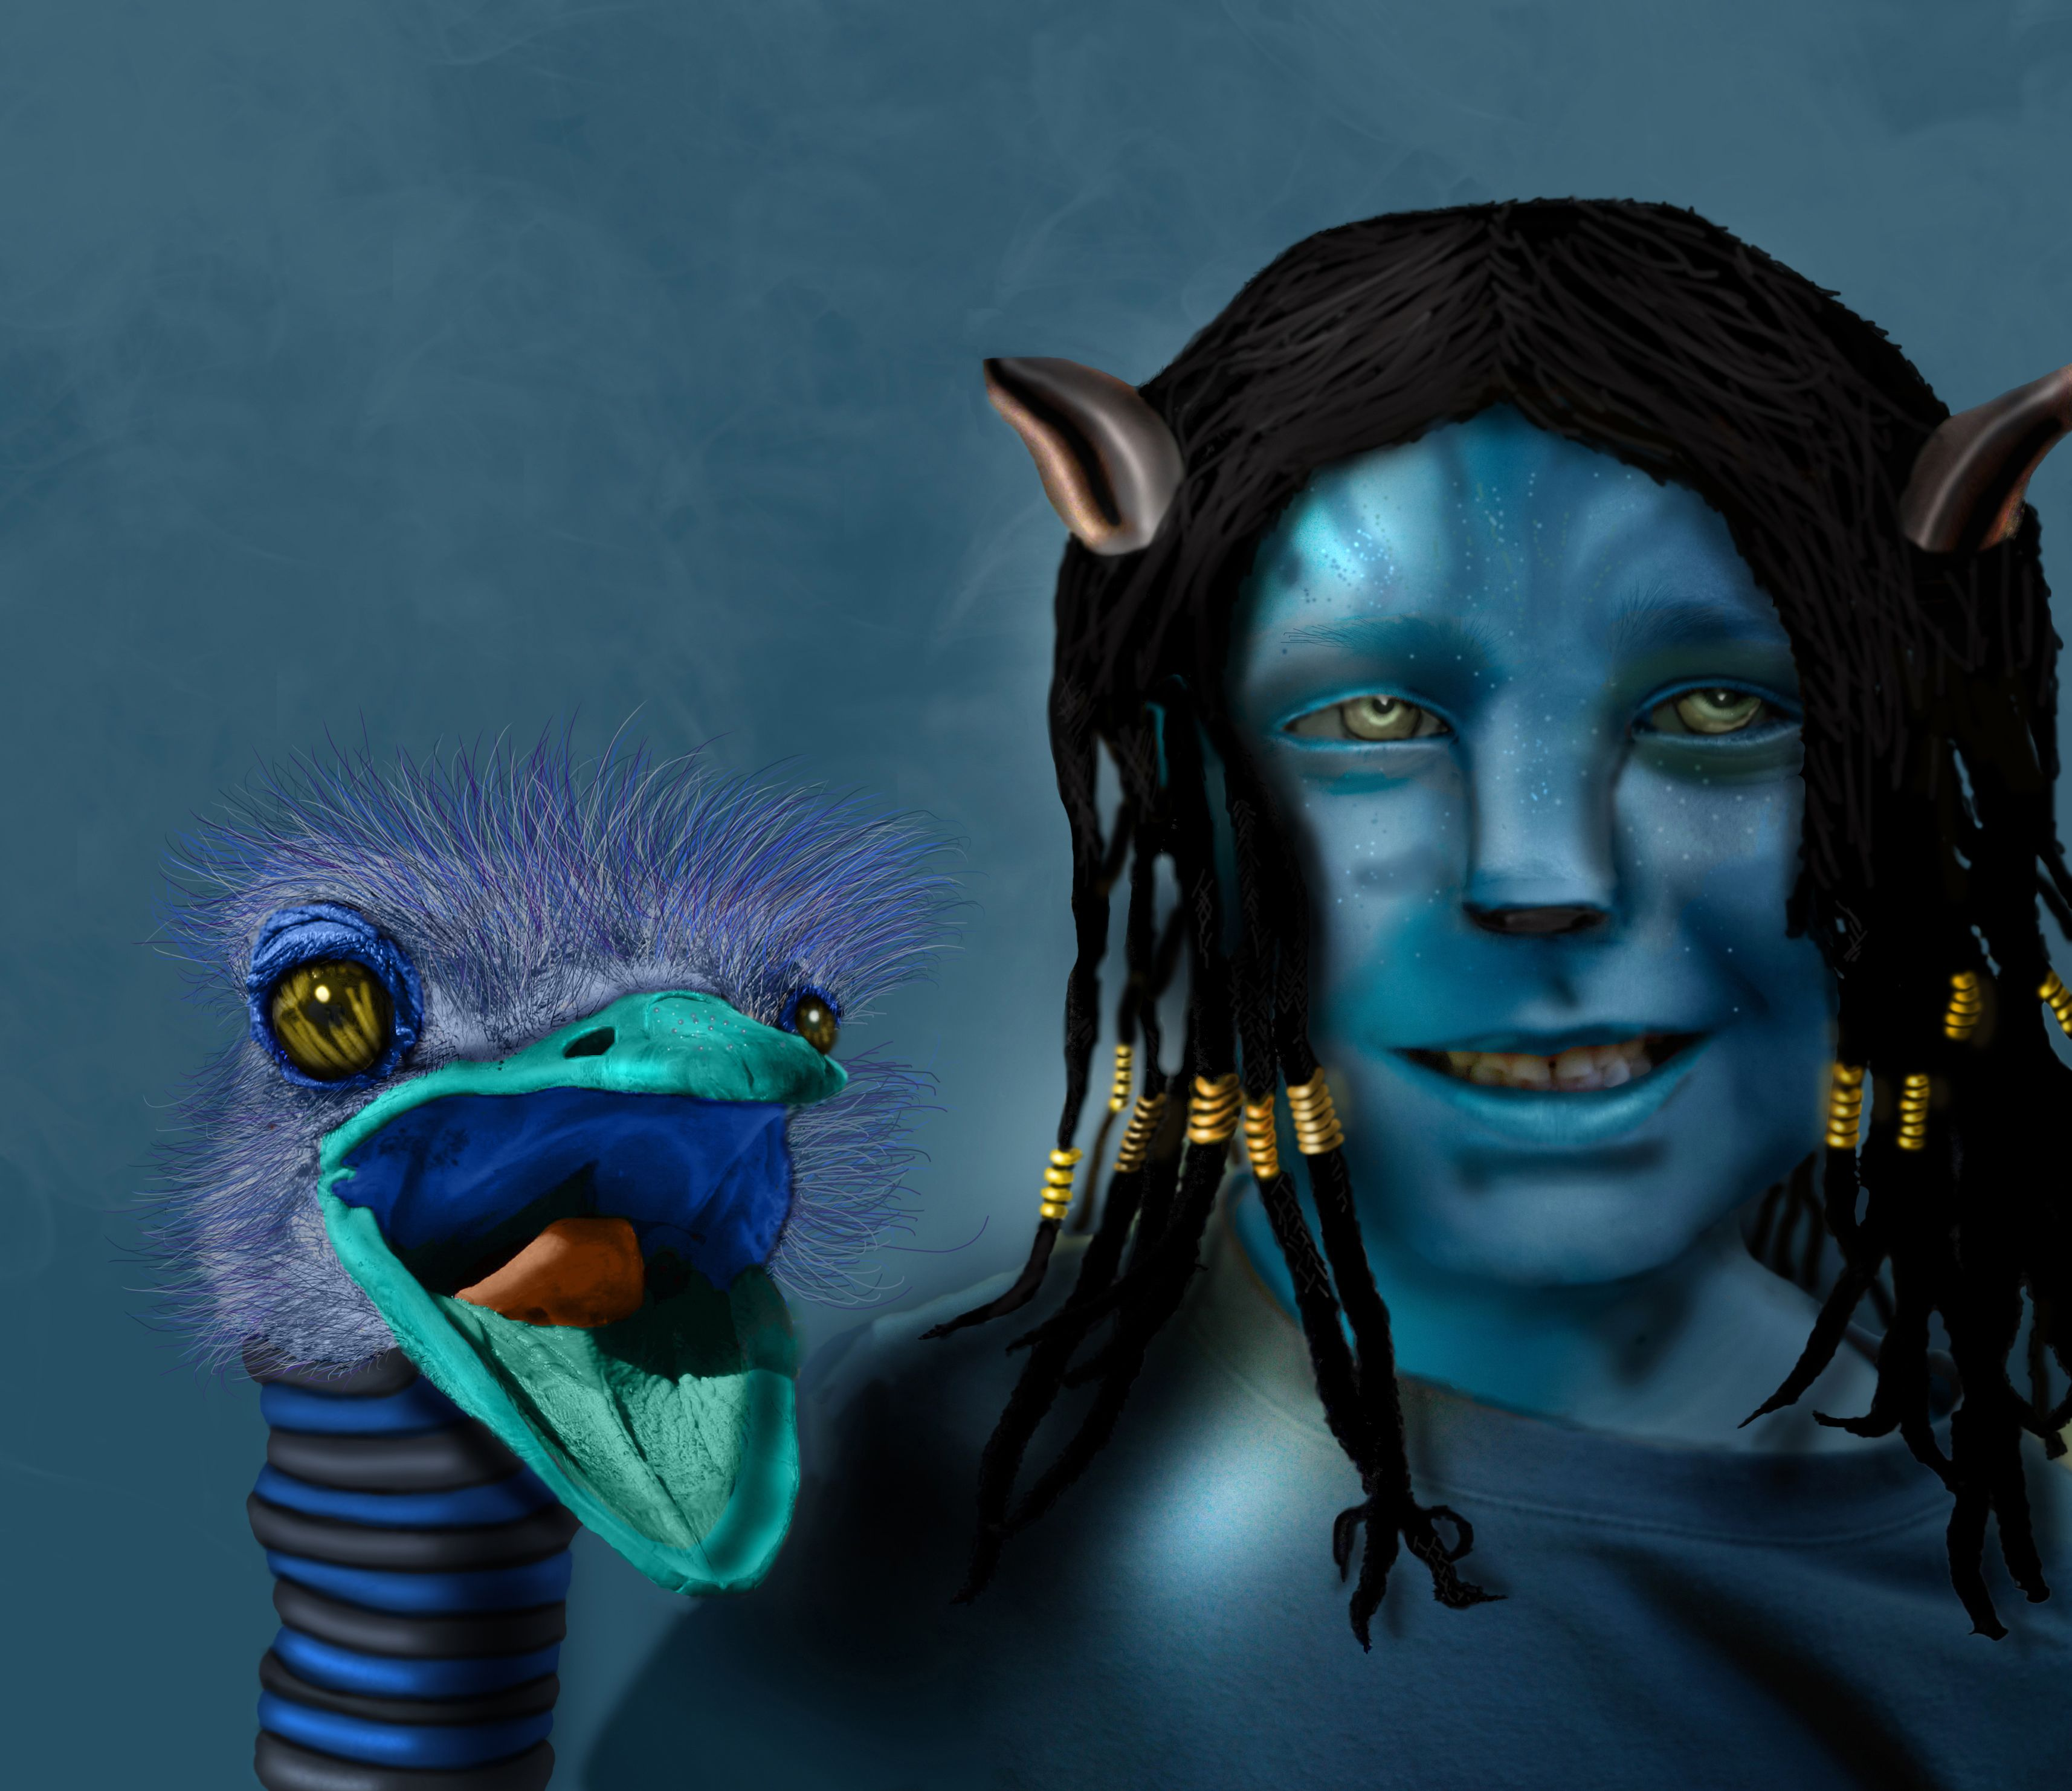 Best Friends Picture, By Donh For: Avatar Mania Photoshop